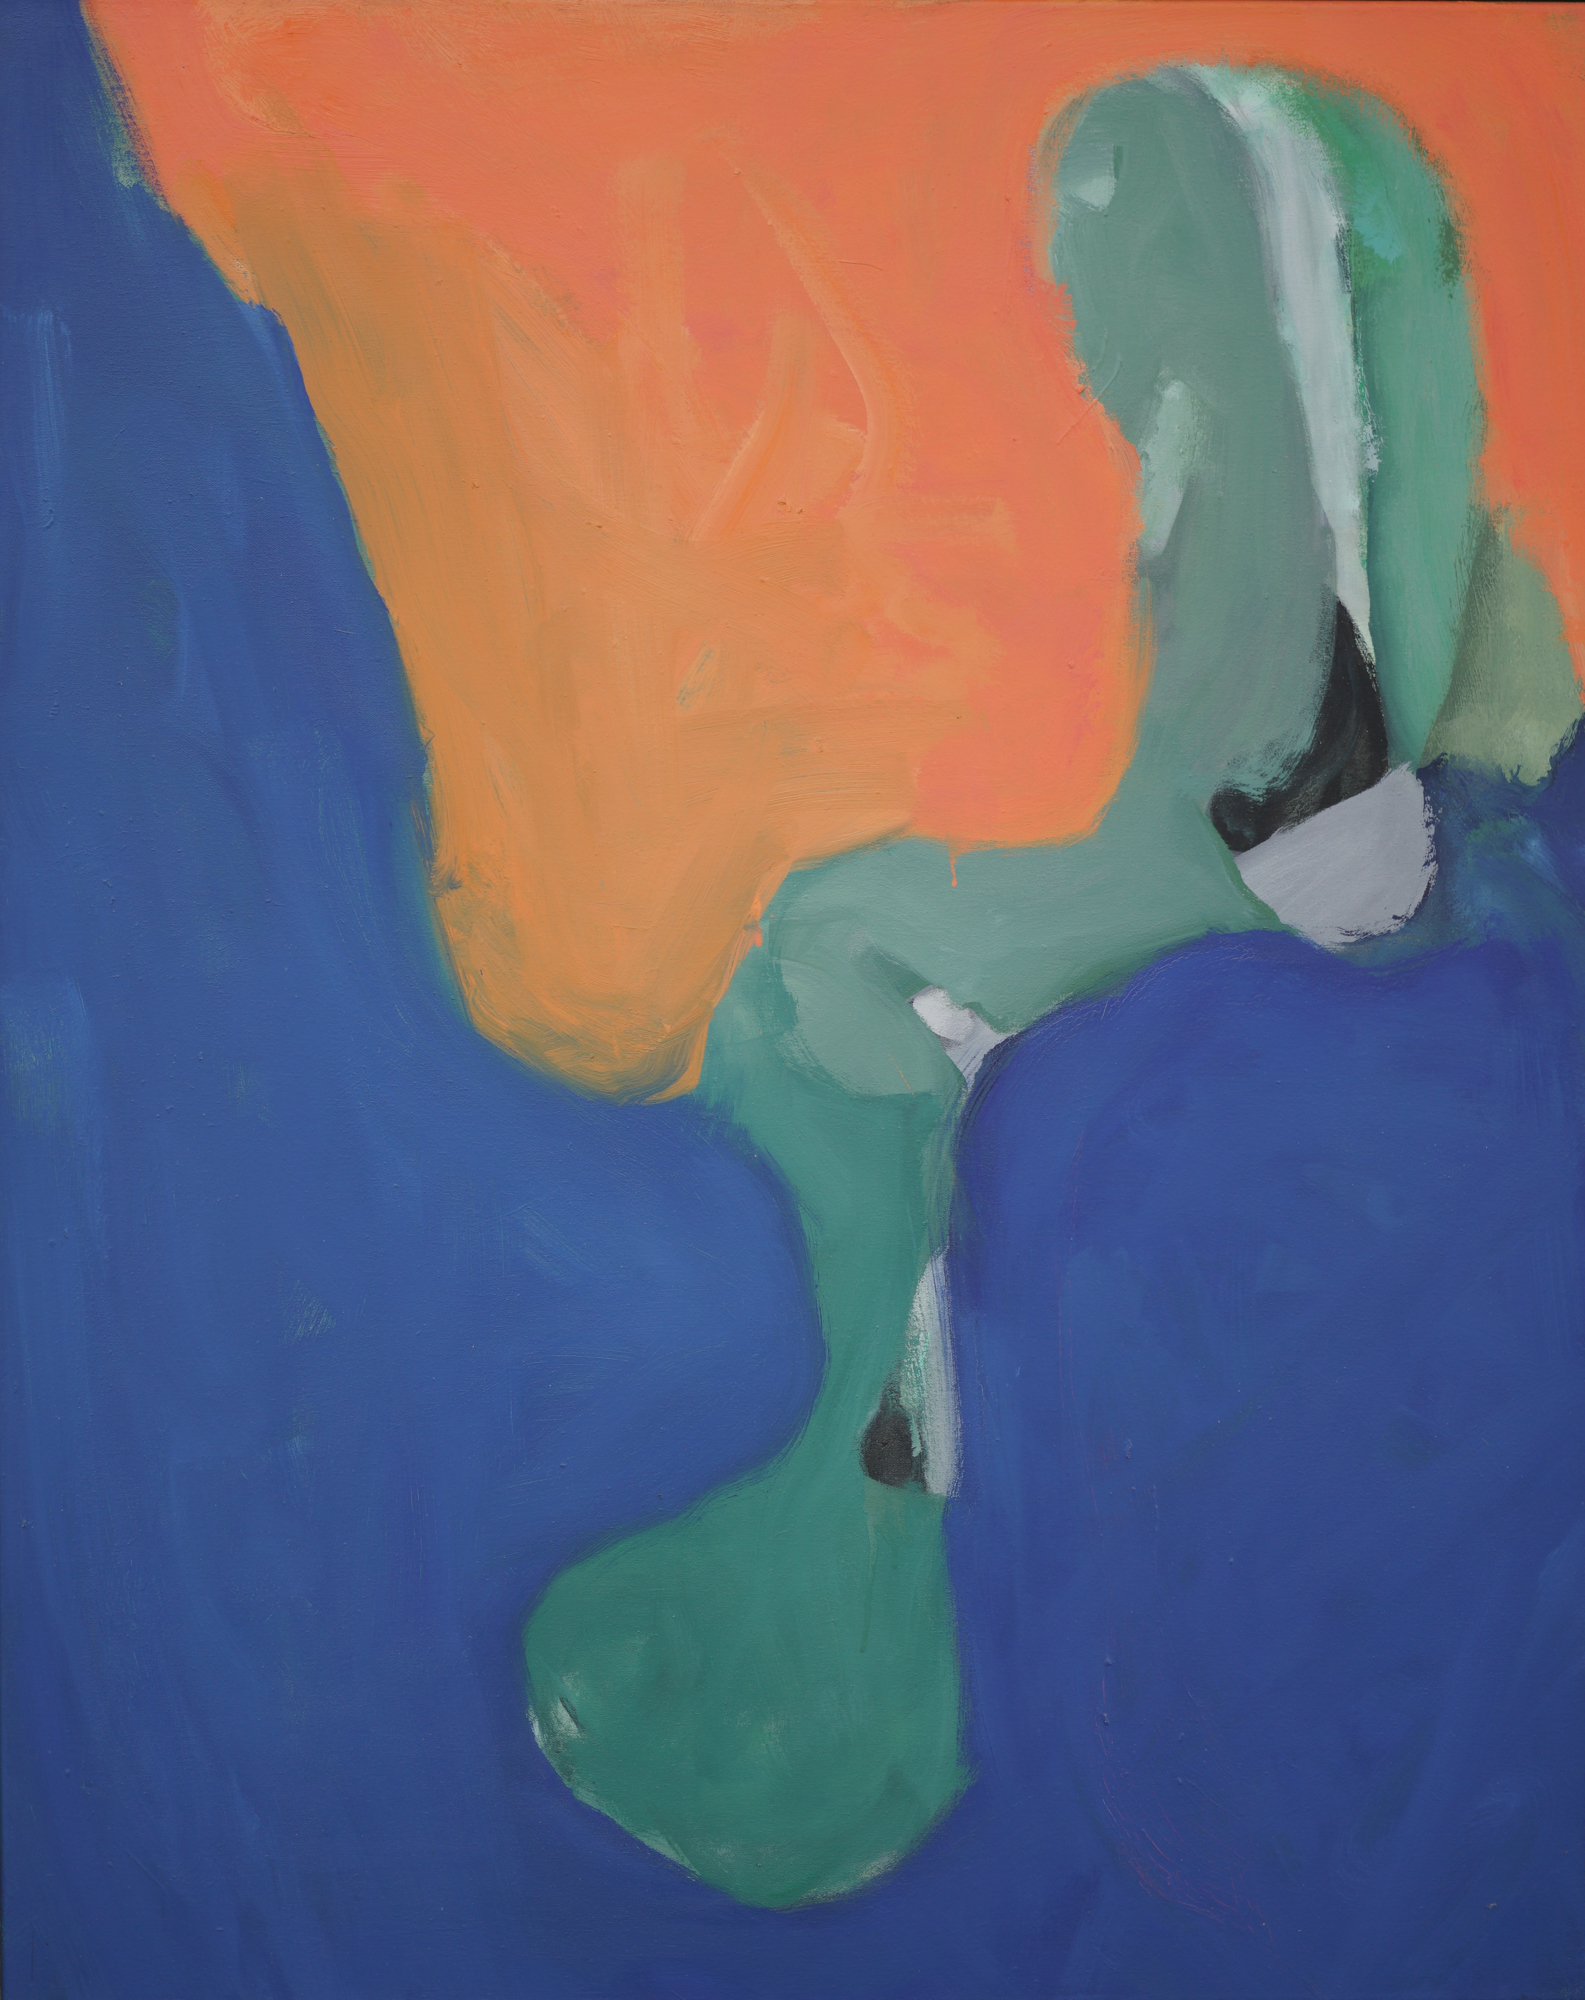 Somyot Hananuntasuk, 2013_05 , 2013, Oil on Canvas, 100 x 80 cm